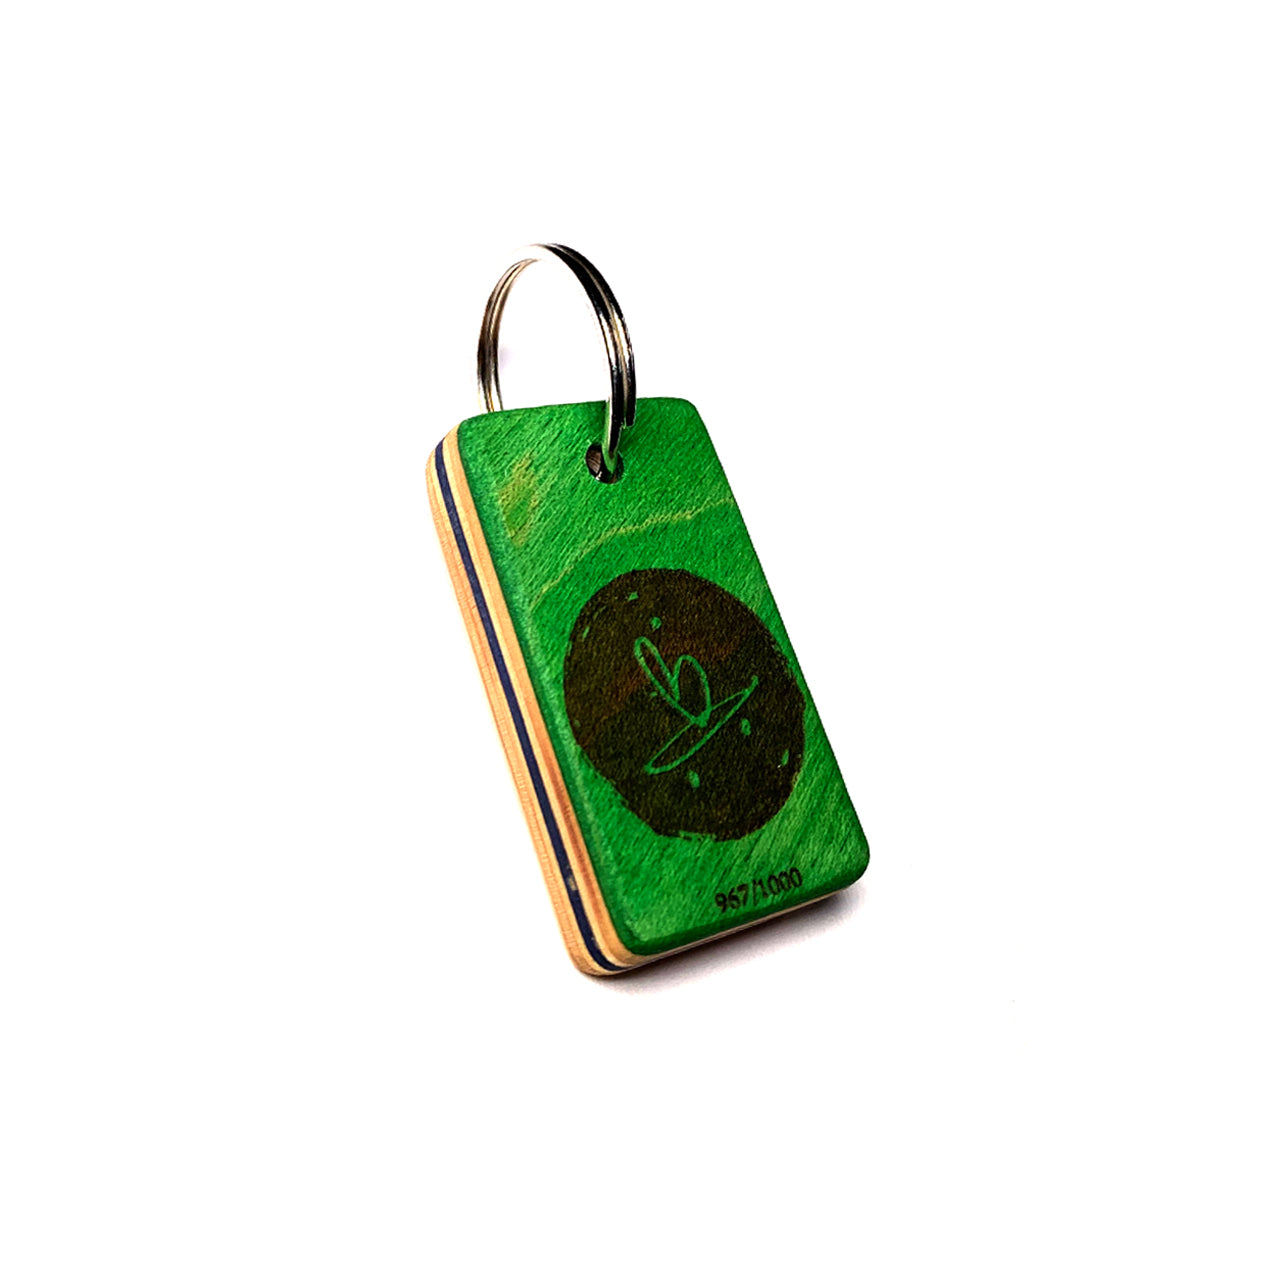 Birling - Beart Board Ply Key Chain - Green